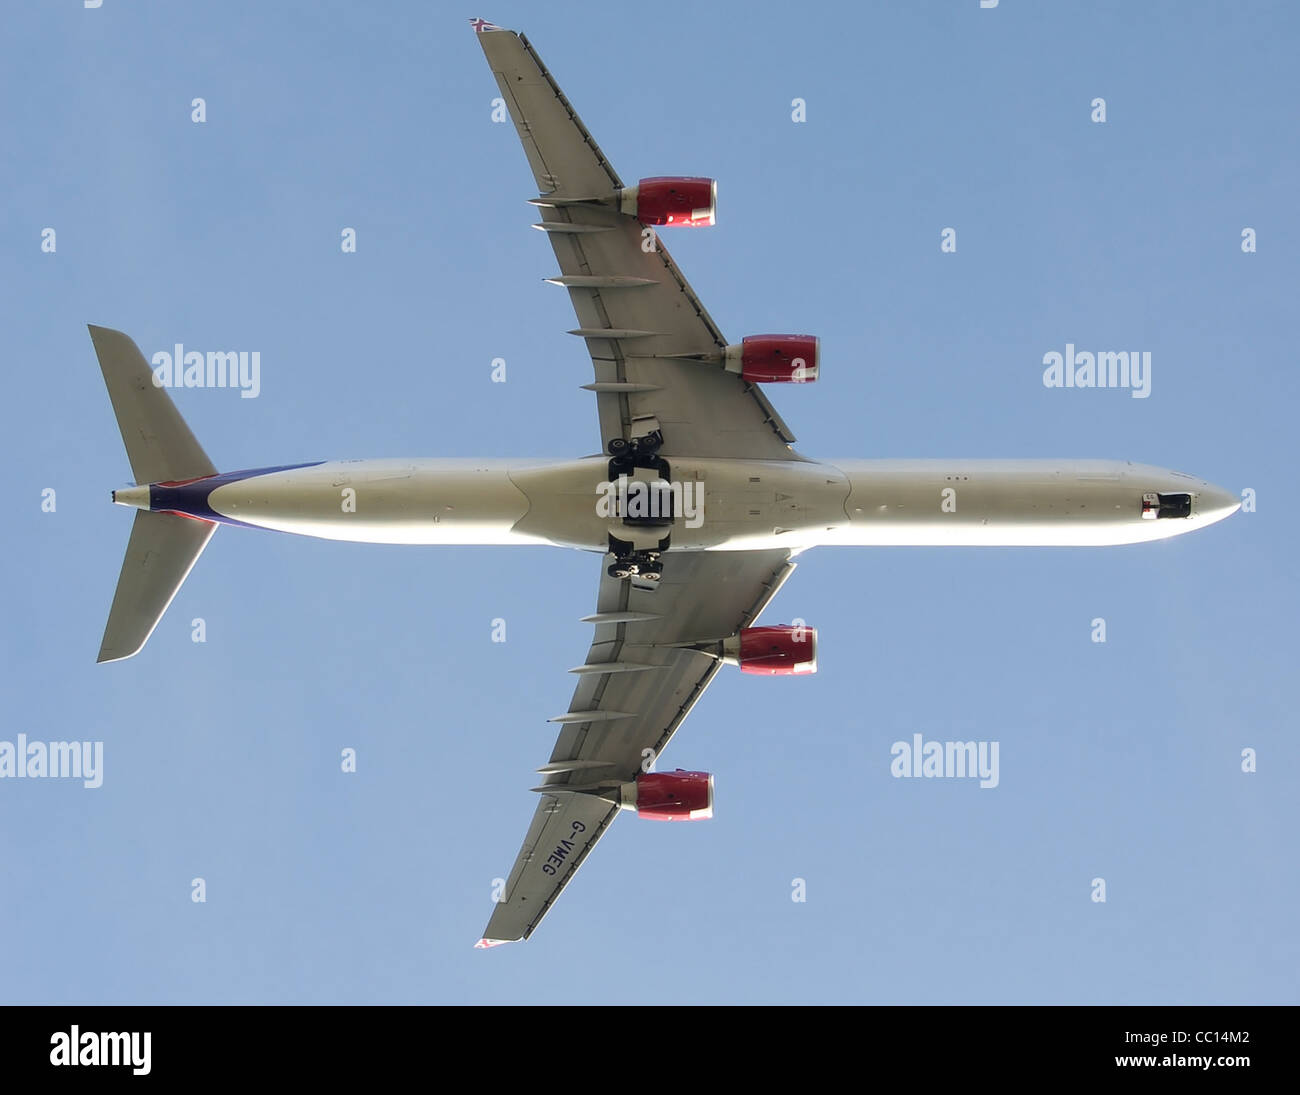 Virgin Atlantic Airbus A340-600 takes off from London Heathrow Airport, England. - Stock Image